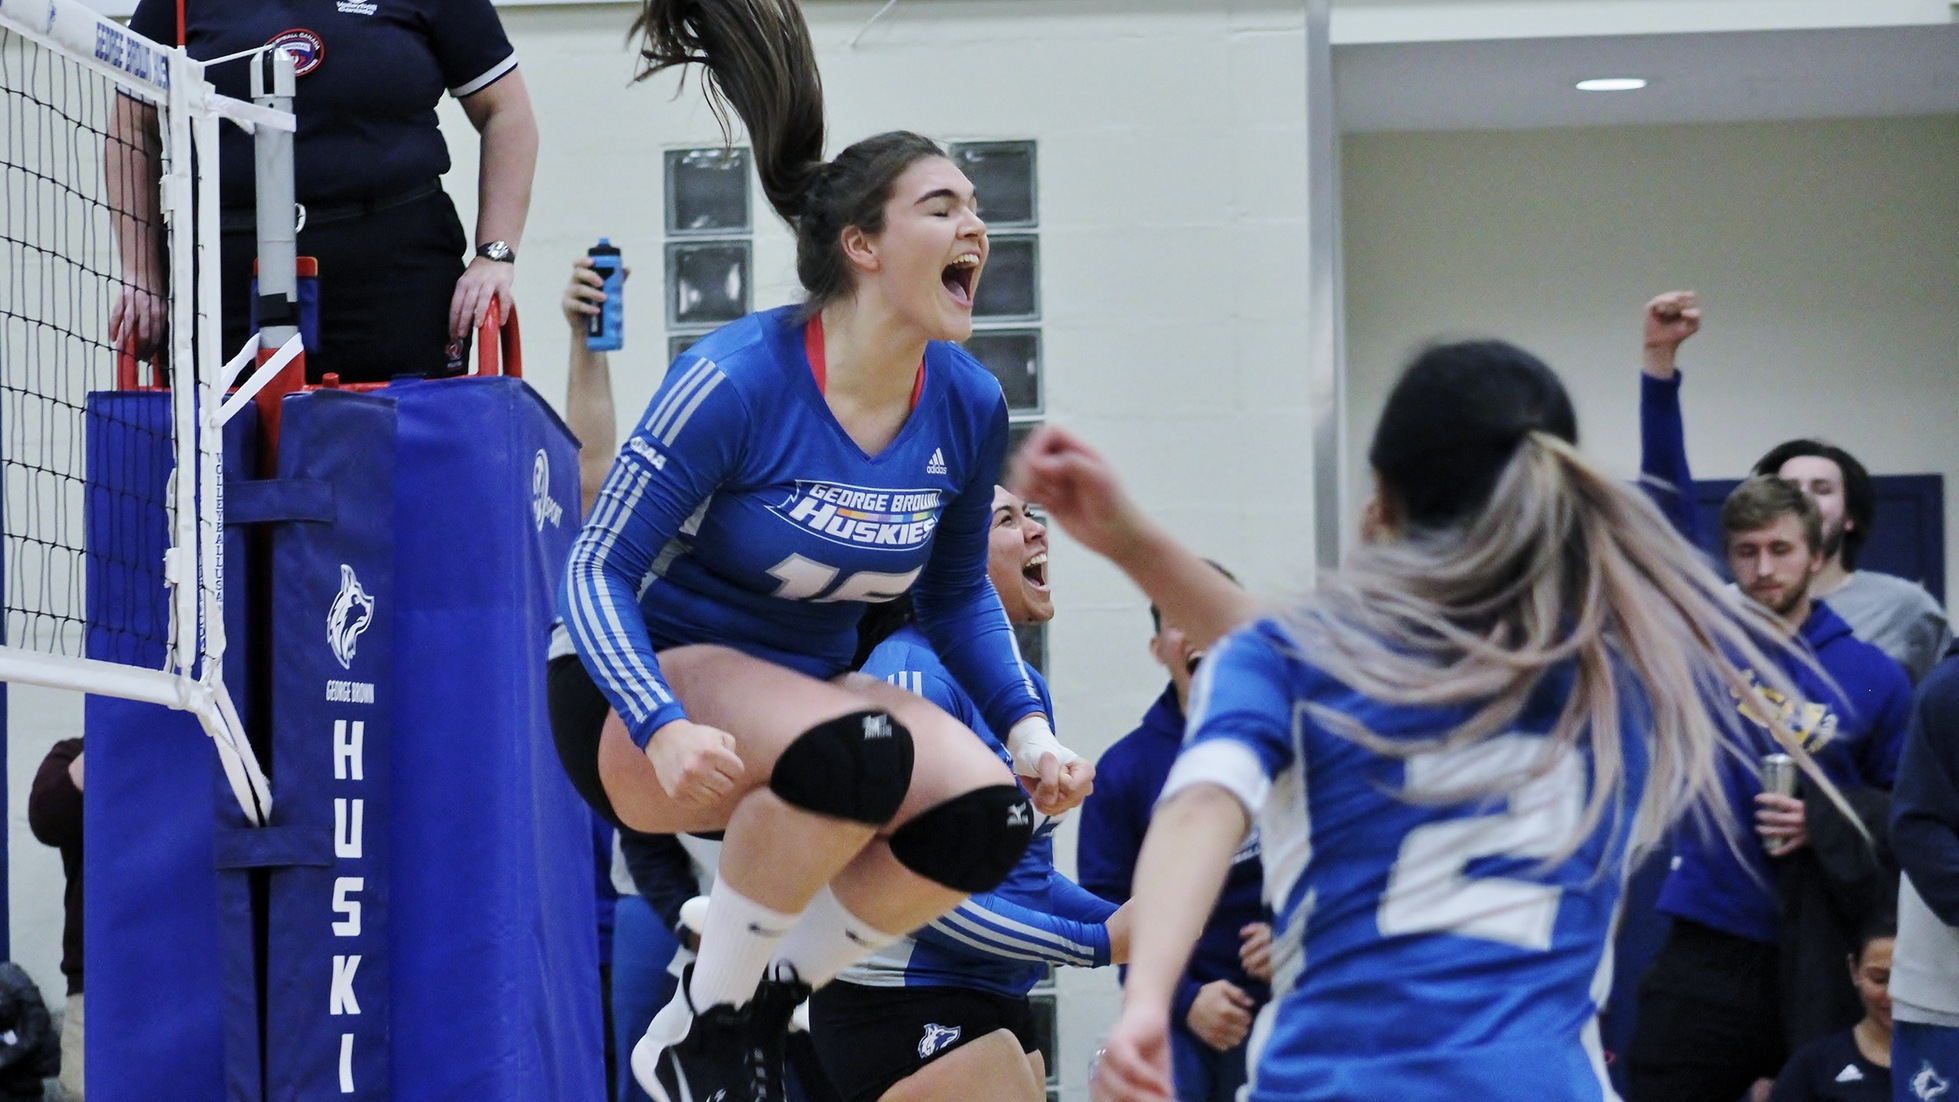 HUSKIES WOMEN'S VOLLEYBALL STORM BACK FROM 2-0 DEFICIT TO DEFEAT LA CITE